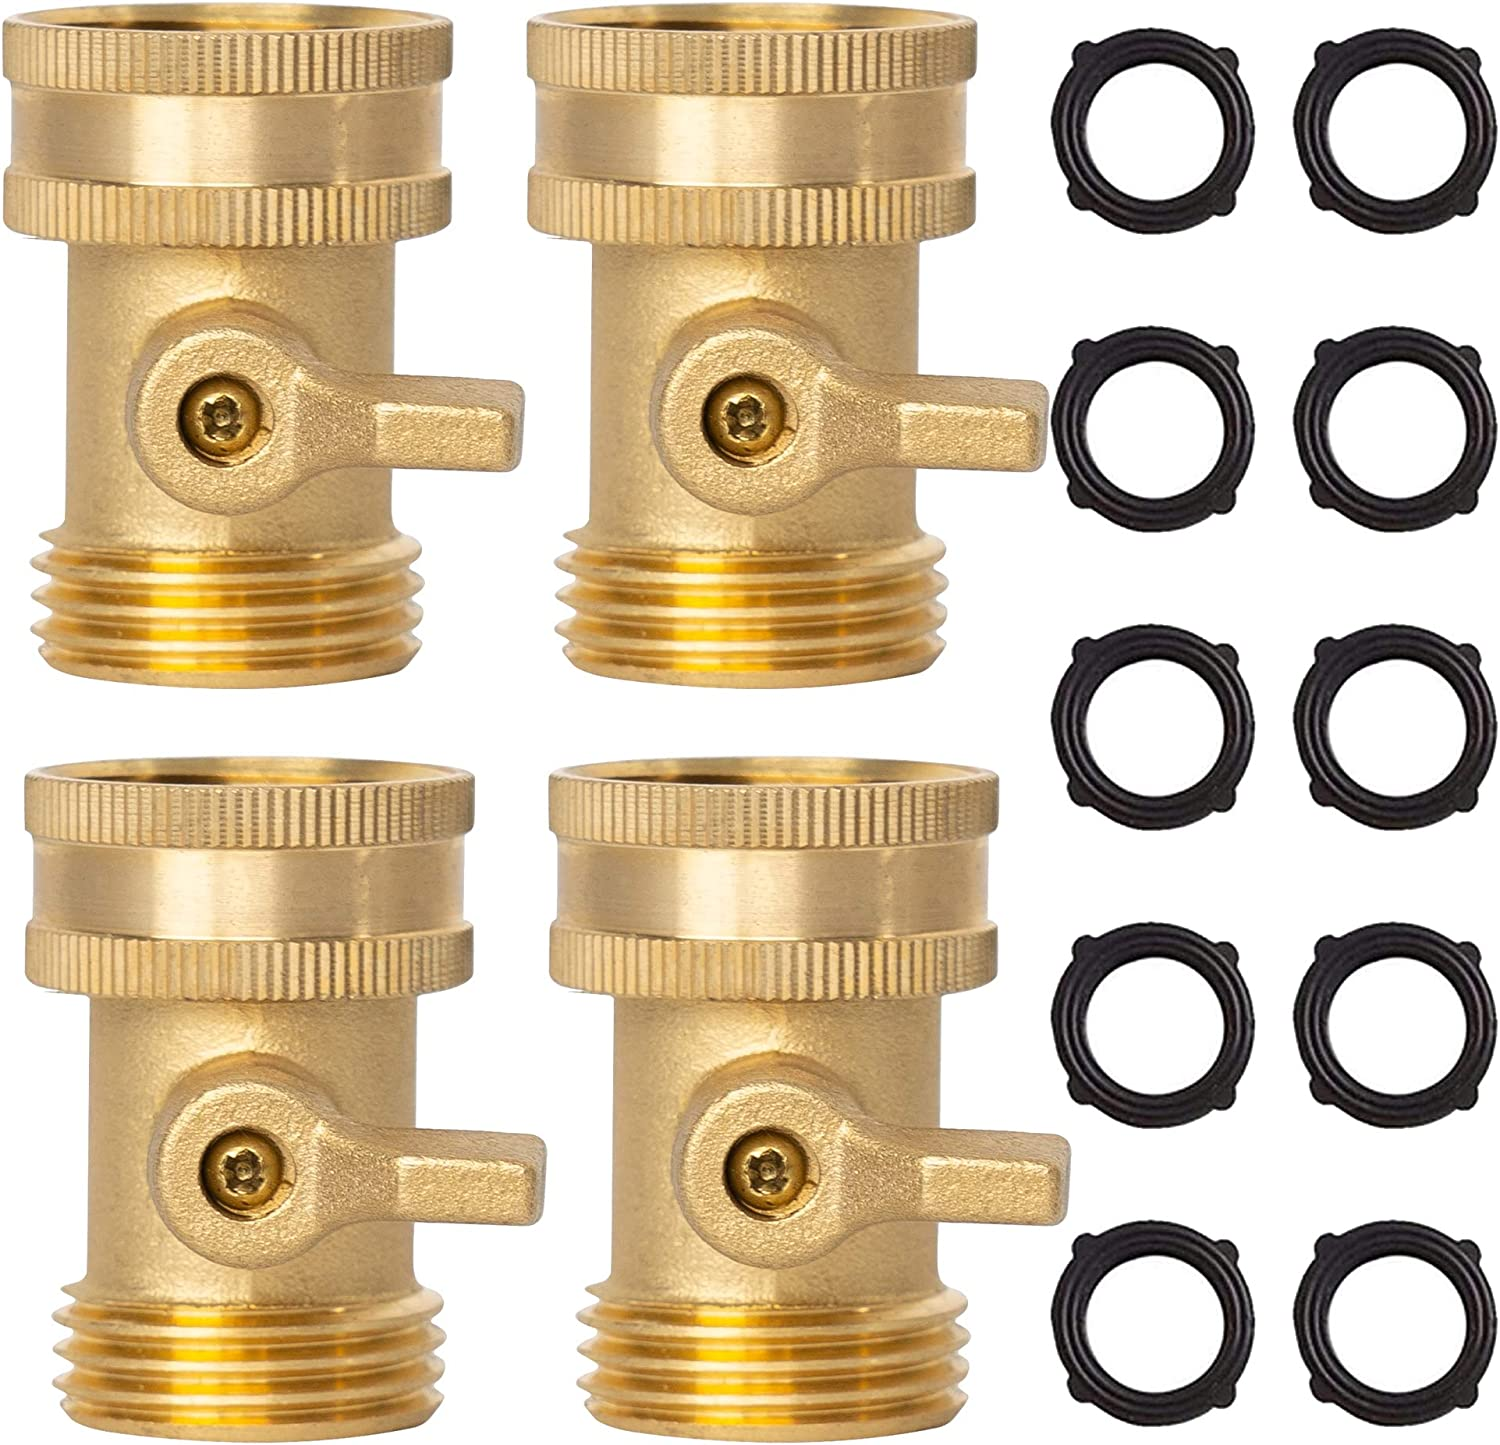 Xiny Tool Brass Garden Hose Shut Off Valve, Heavy Duty 3/4 Inch Solid Brass Garden Hose Shut Off Valve with 10 Extra Rubber Washers (4)